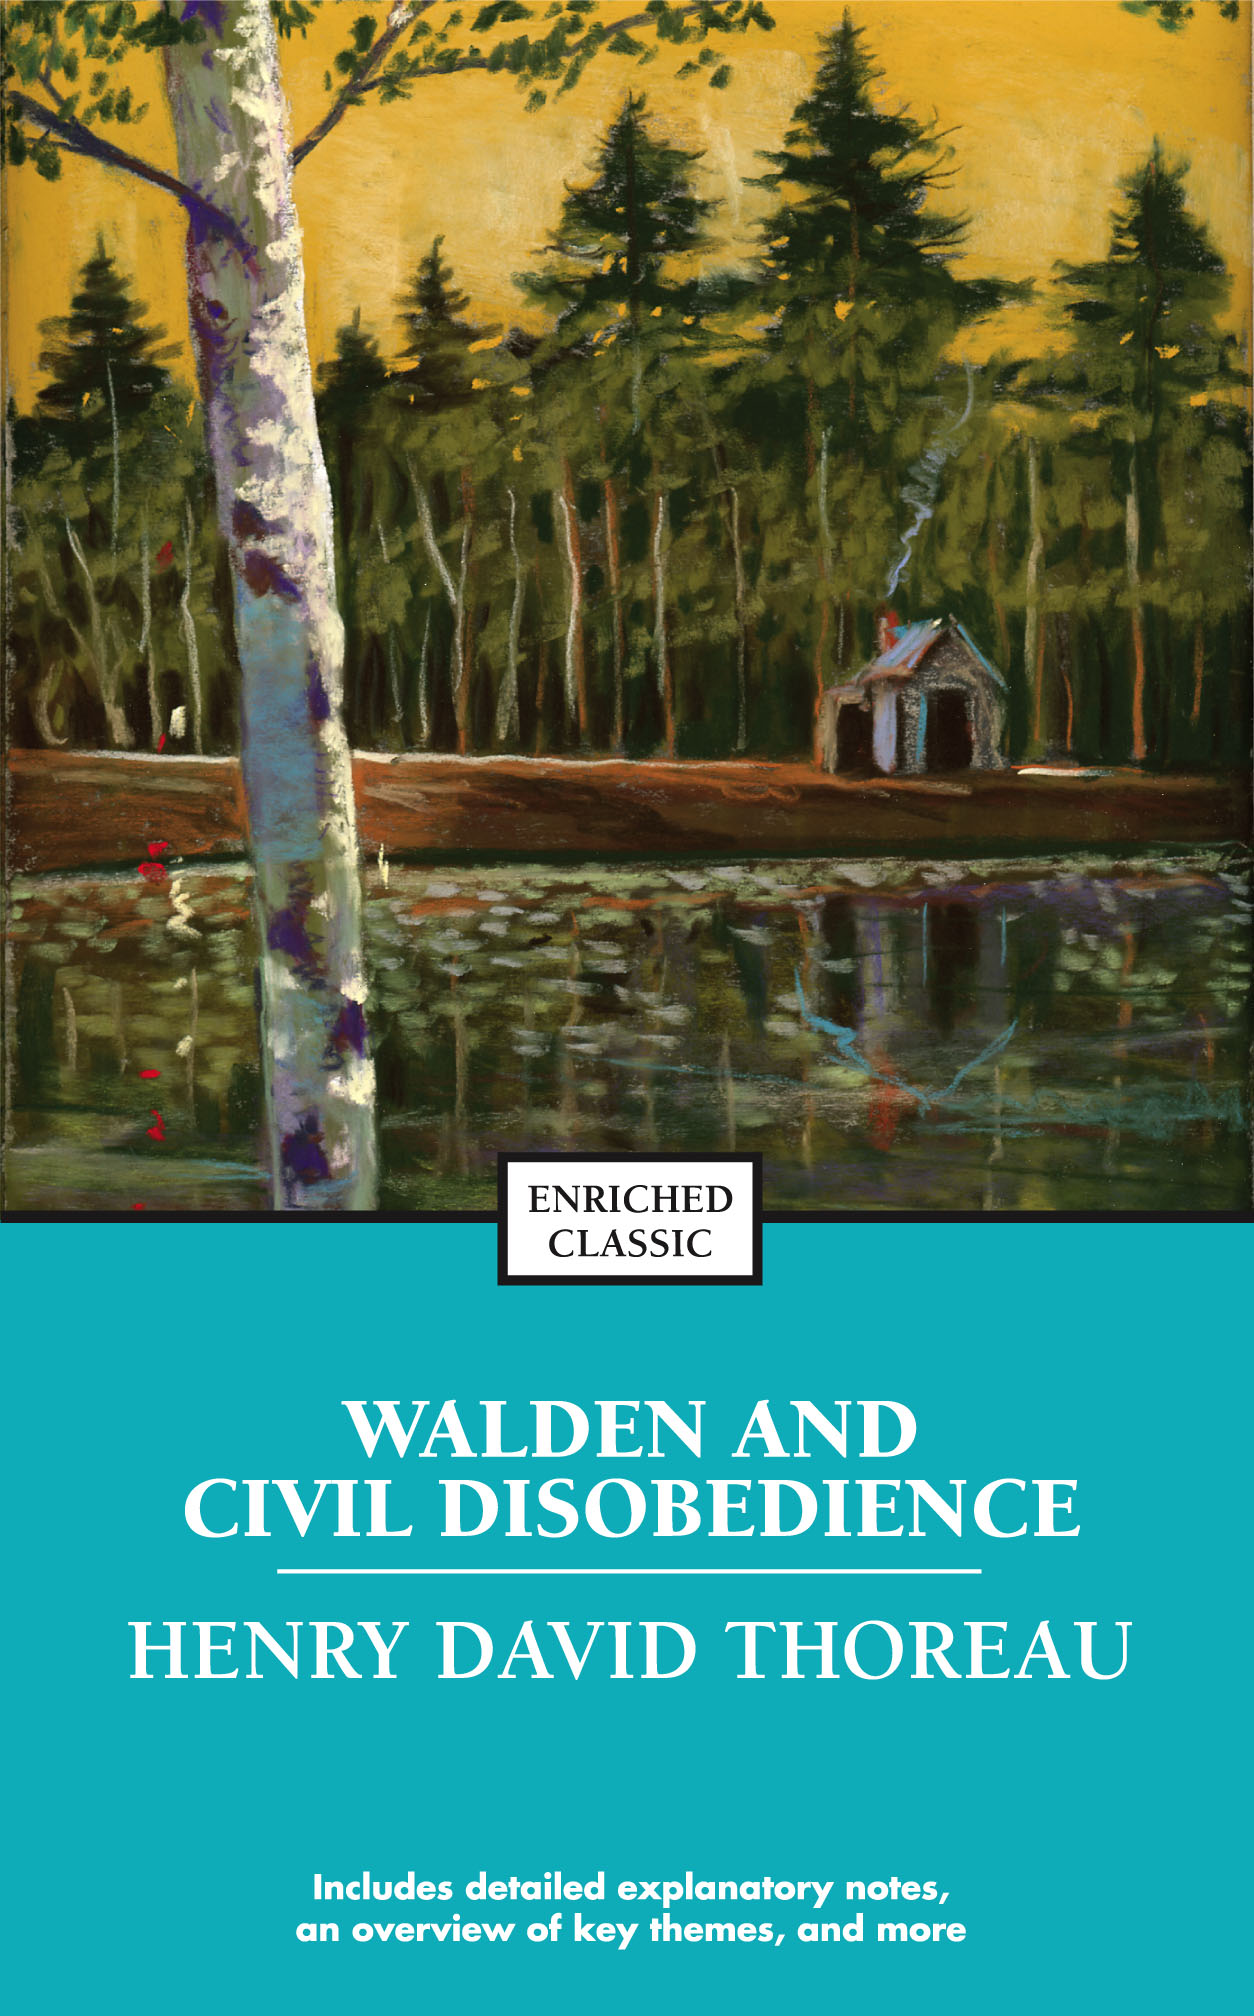 Walden And Civil Disobedience  Book By Henry David Thoreau  Book Cover Image Jpg Walden And Civil Disobedience Essay On Health Promotion also Example English Essay  Essay Thesis Statement Examples